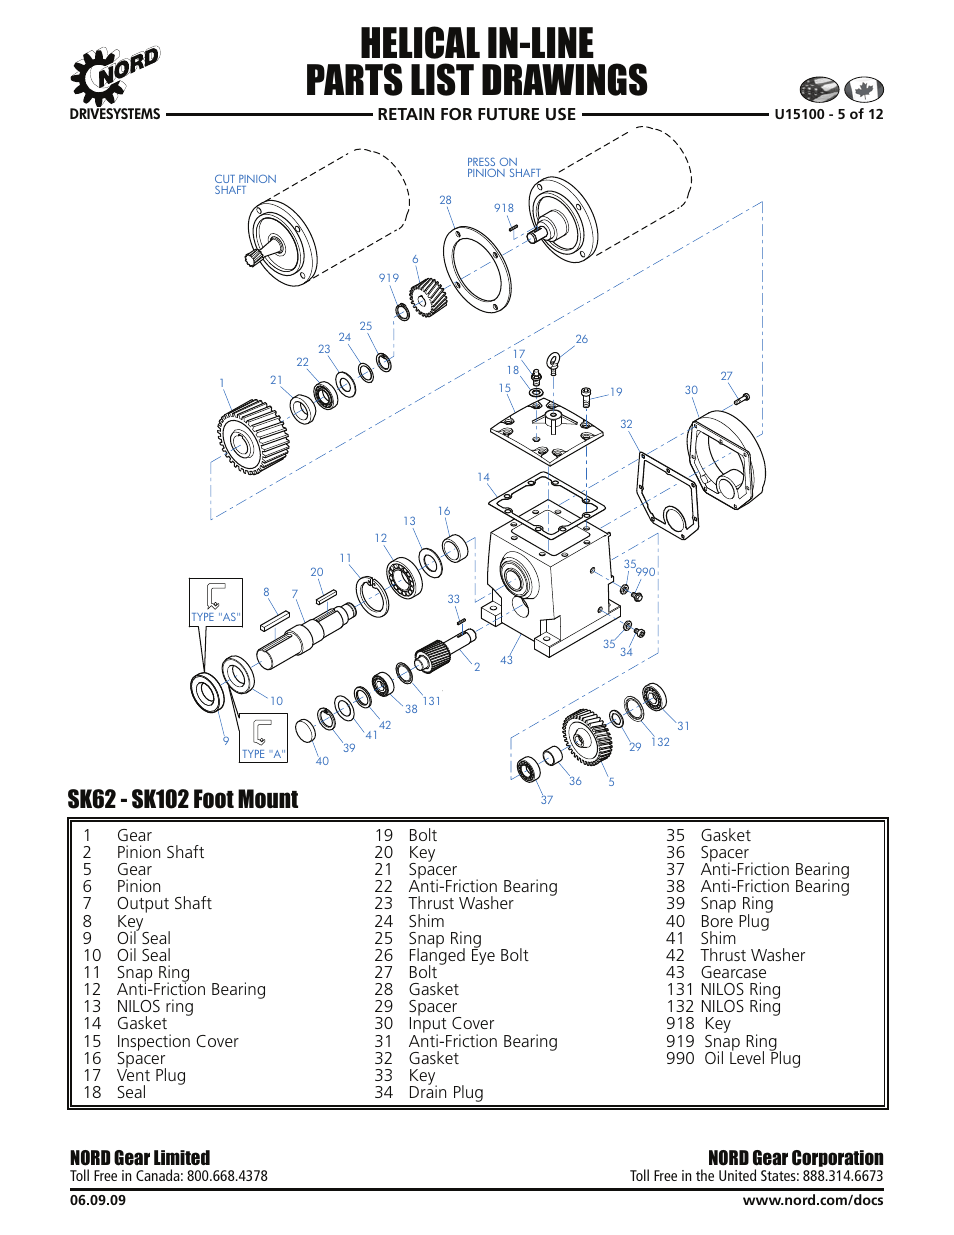 medium resolution of helical in line parts list drawings nord gear corporation nord gear limited viking pump nord tsm for helical inline reducers user manual page 22 29